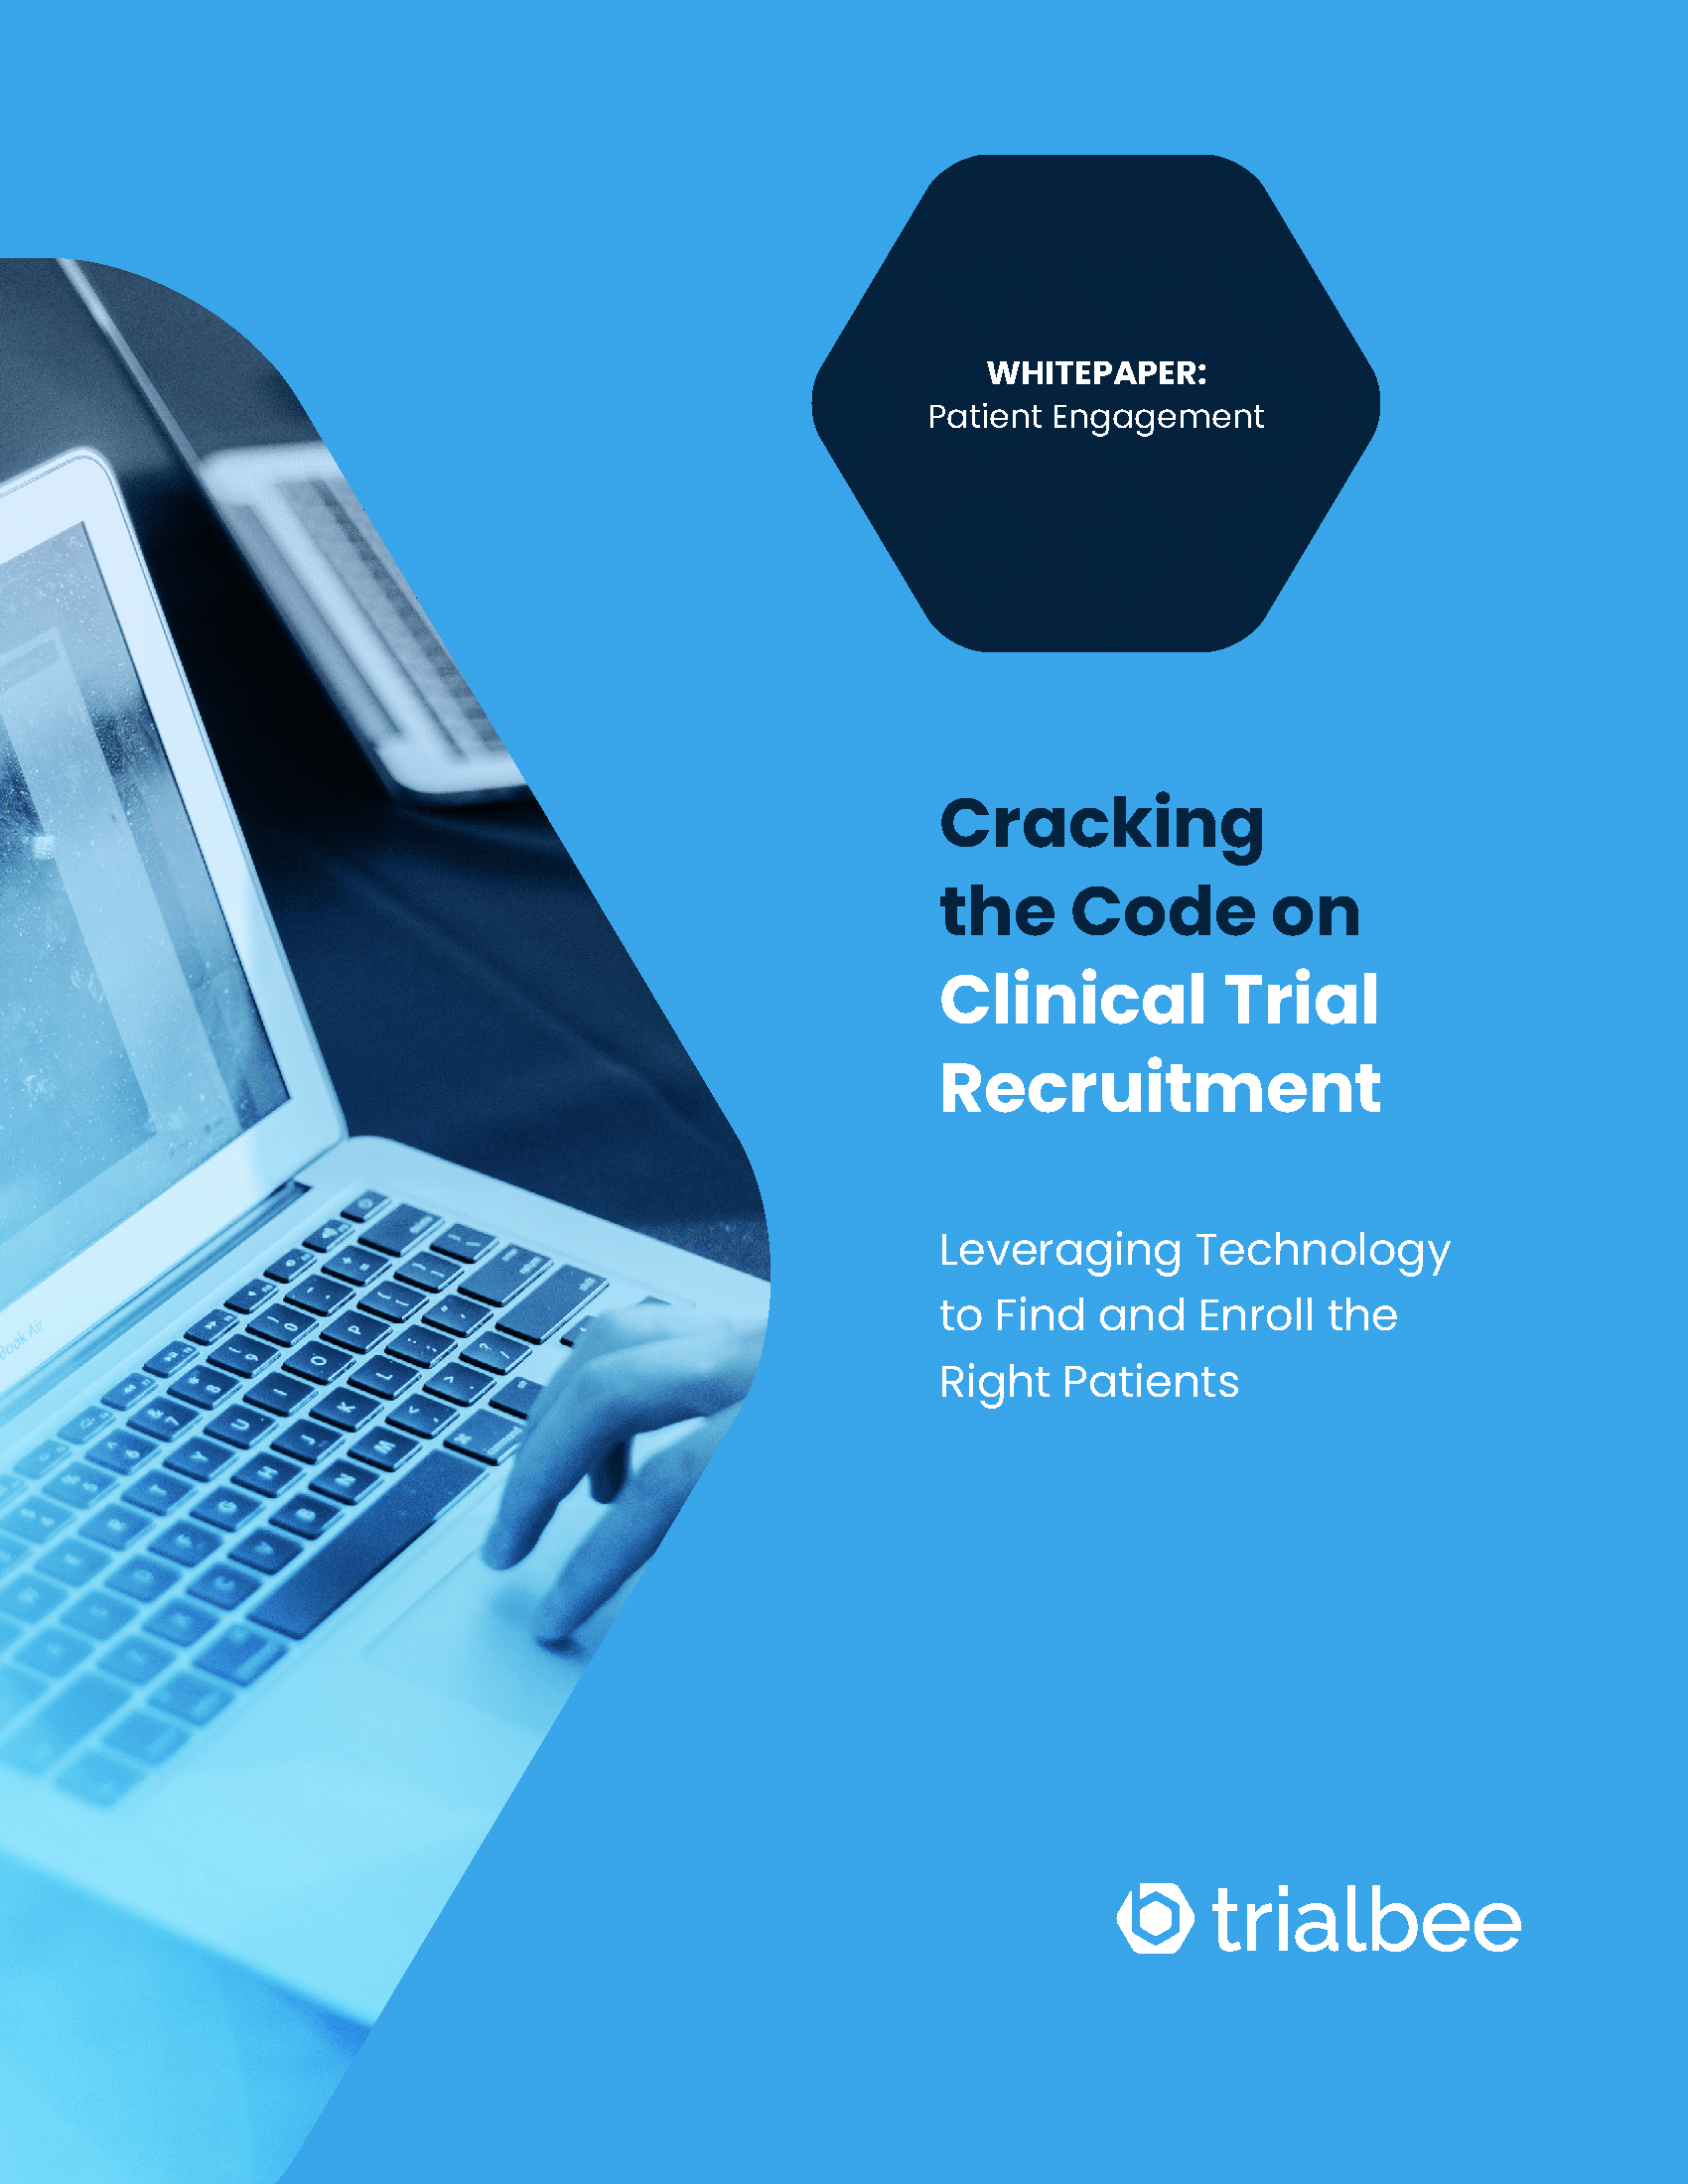 Cracking the Code on Clinical Trial Recruitment